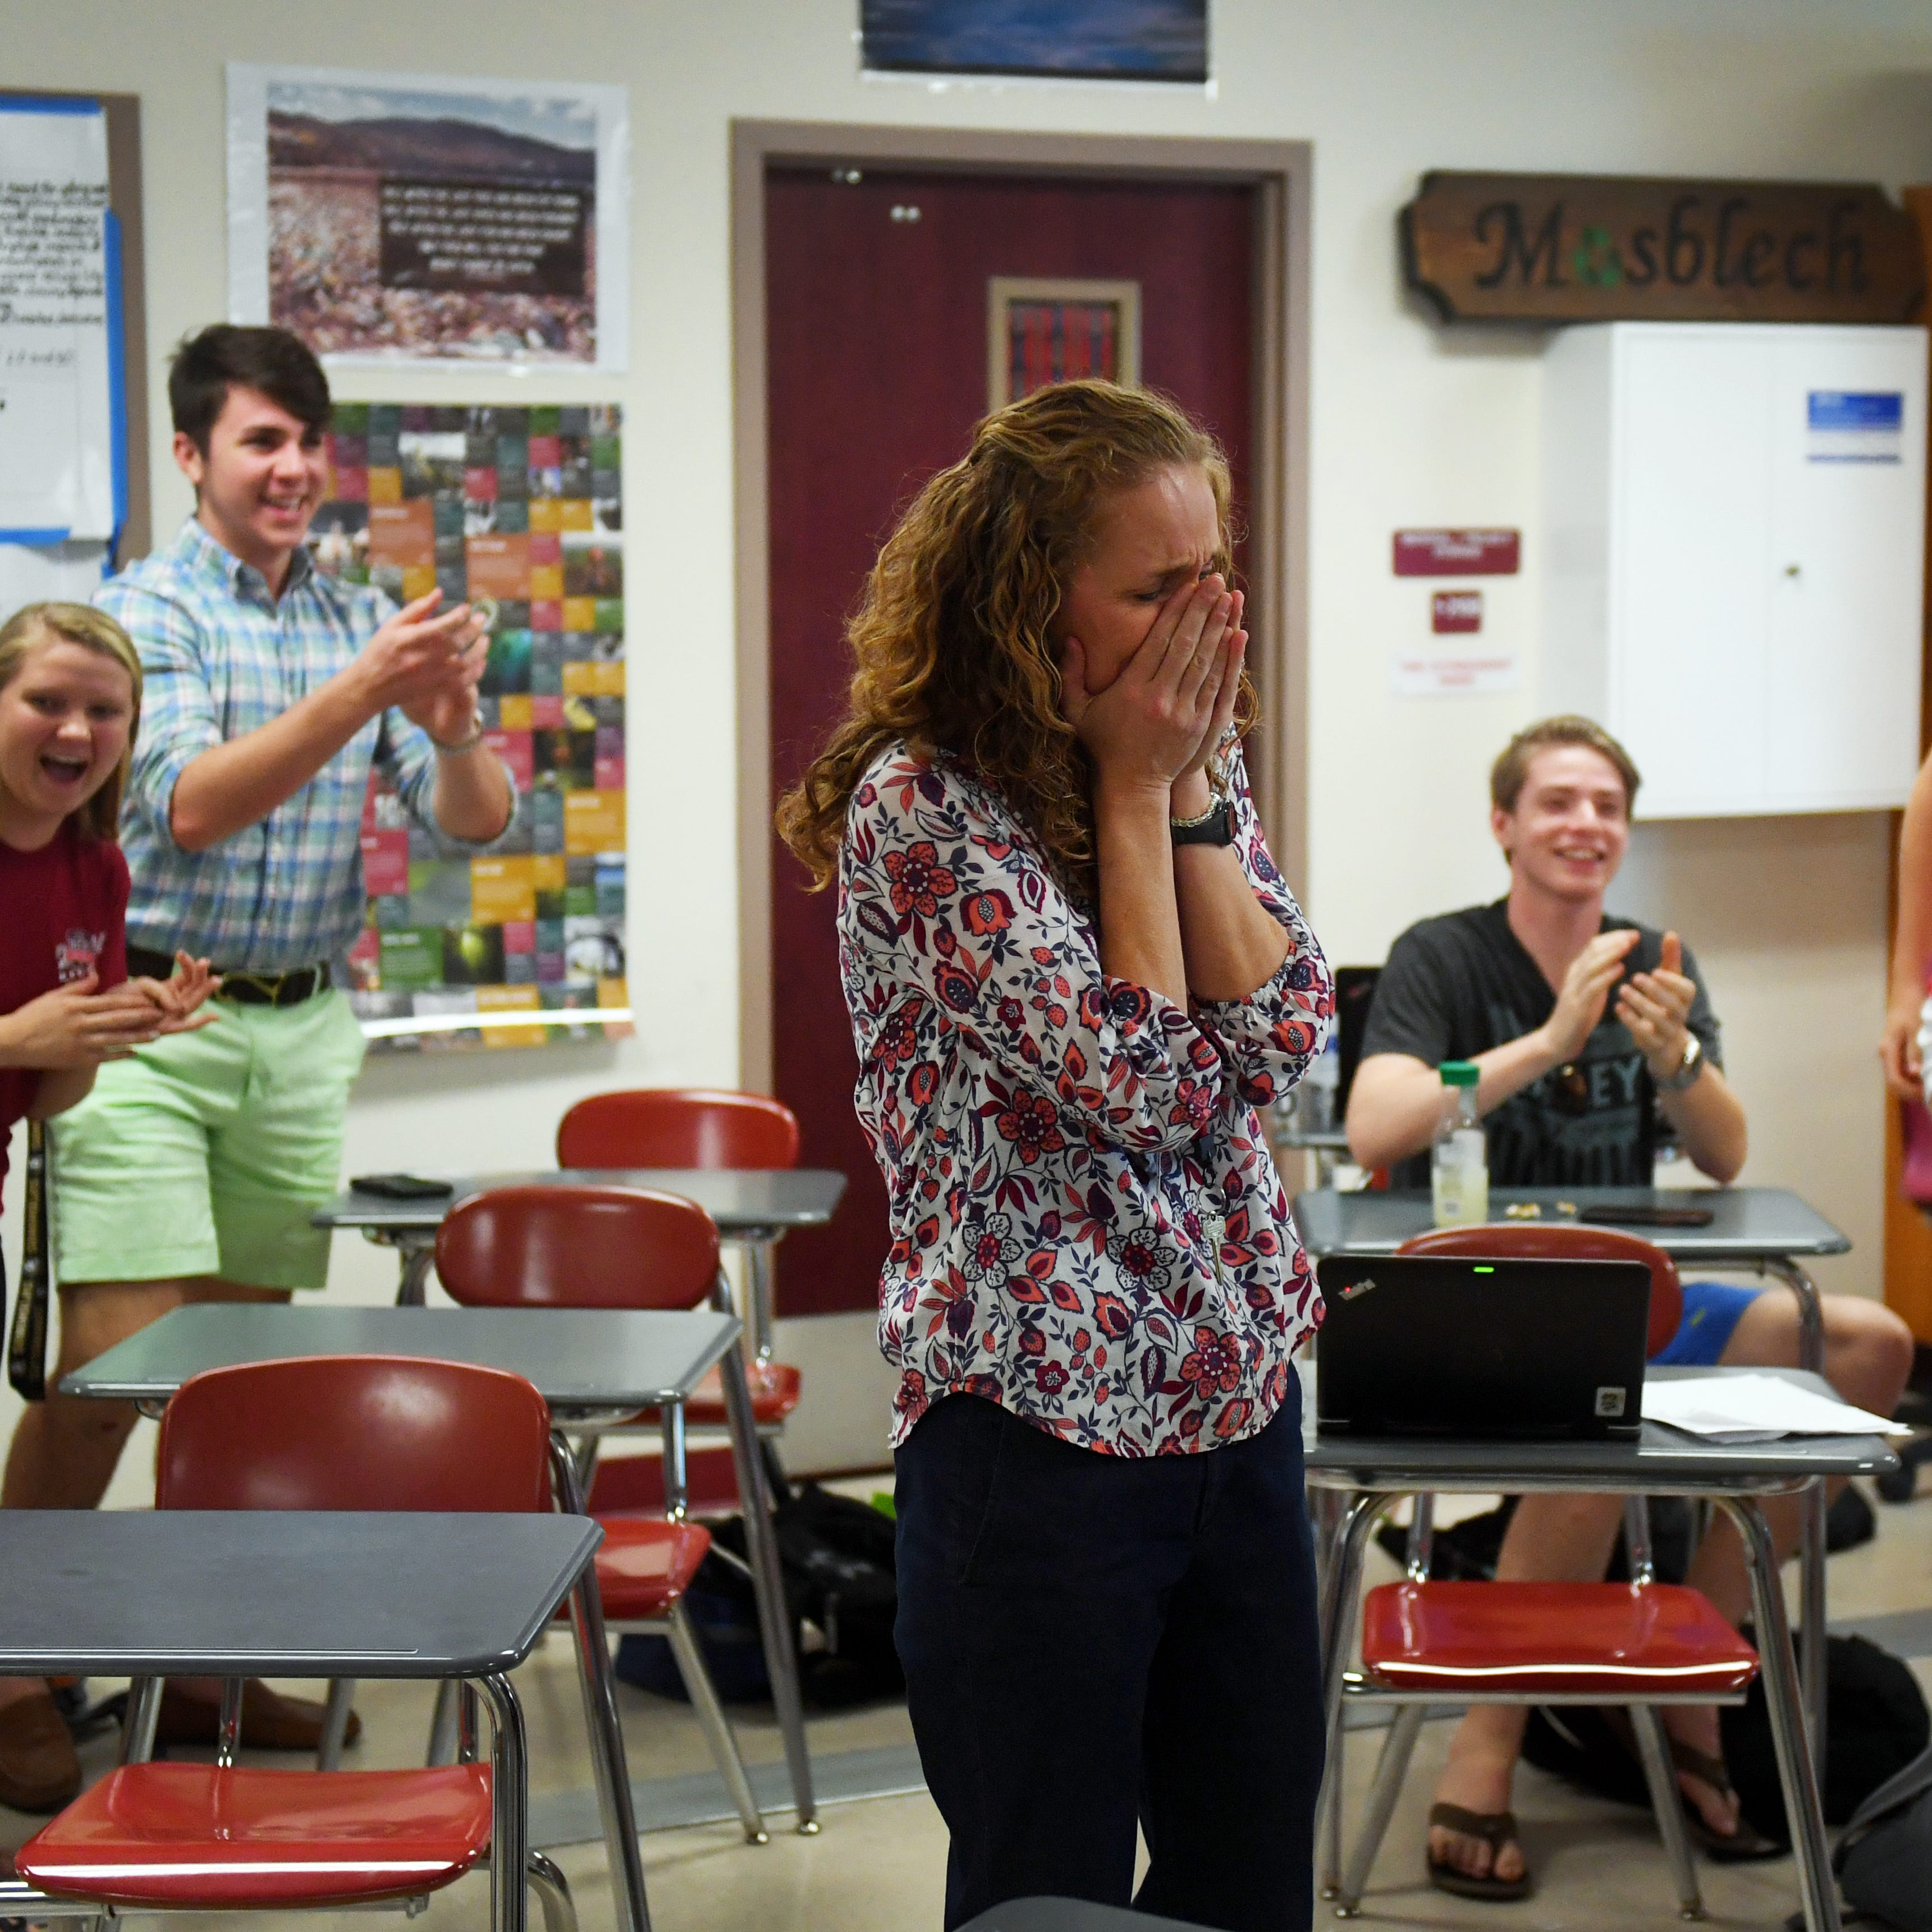 Vero Beach High School science teacher named finalist for state teacher of the year